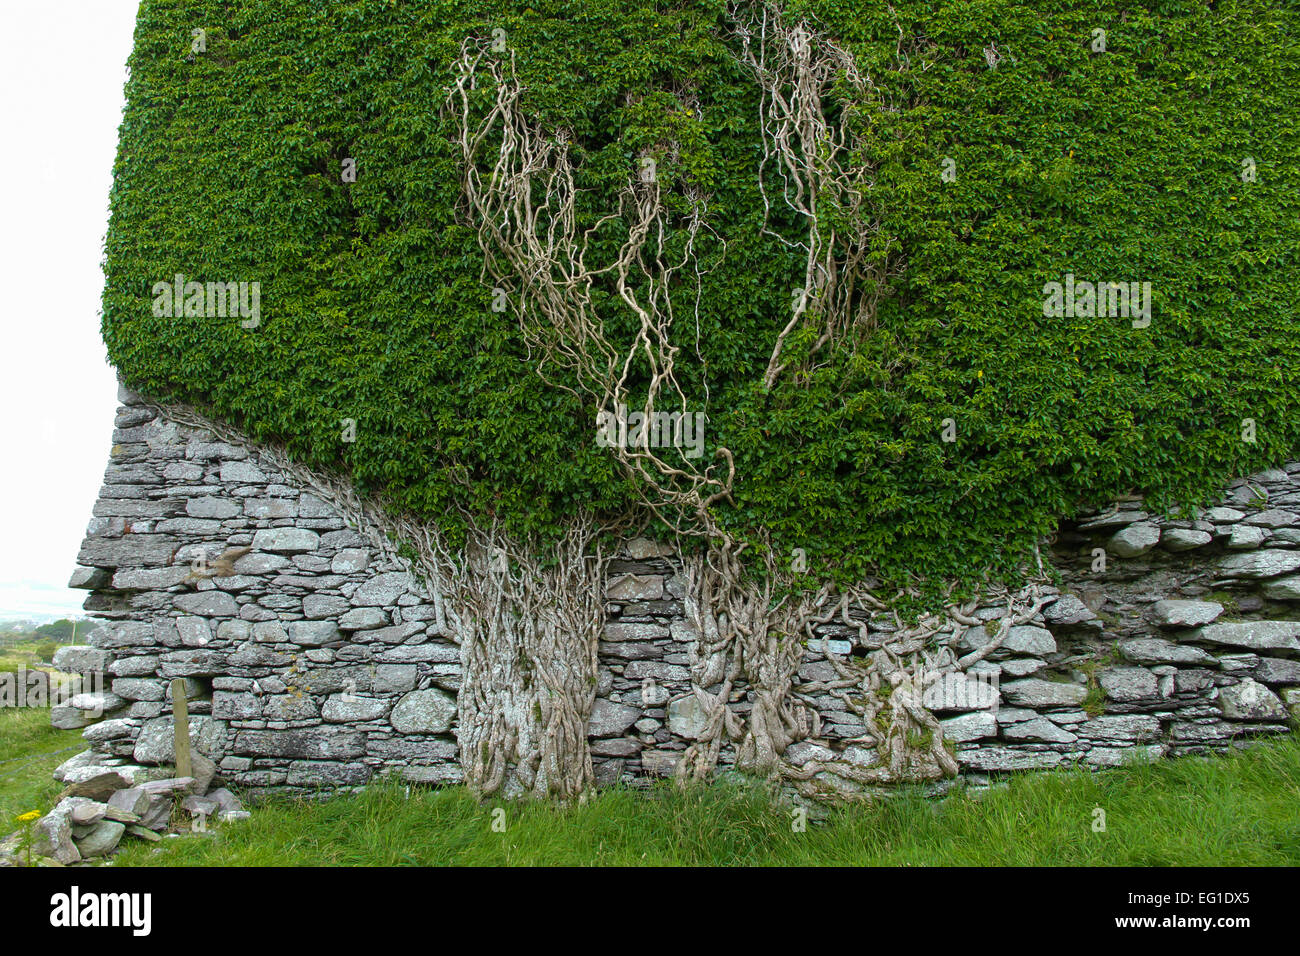 Ancient Ivy covered stone wall in Ireland - Stock Image